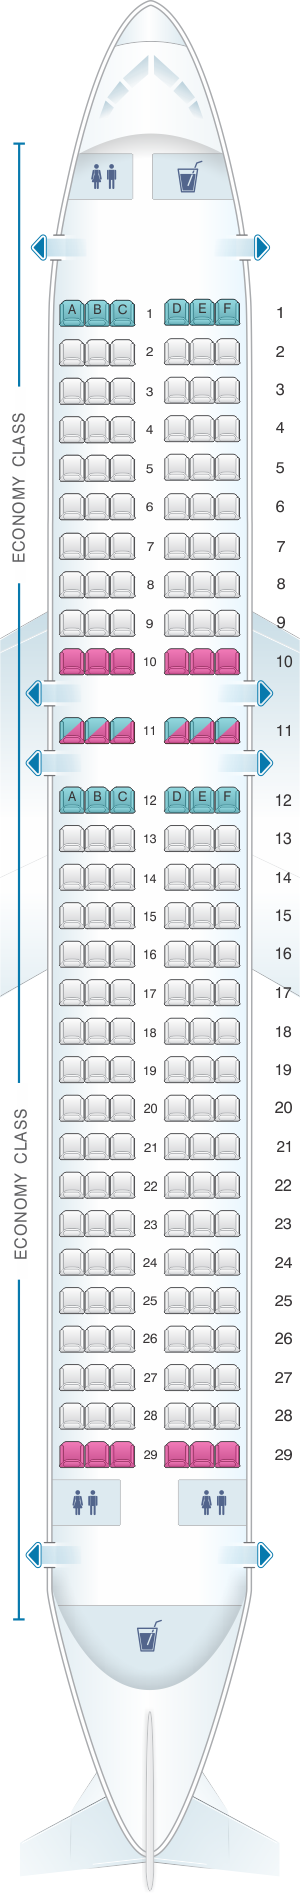 Seat map for Virgin Atlantic Airbus A320 200